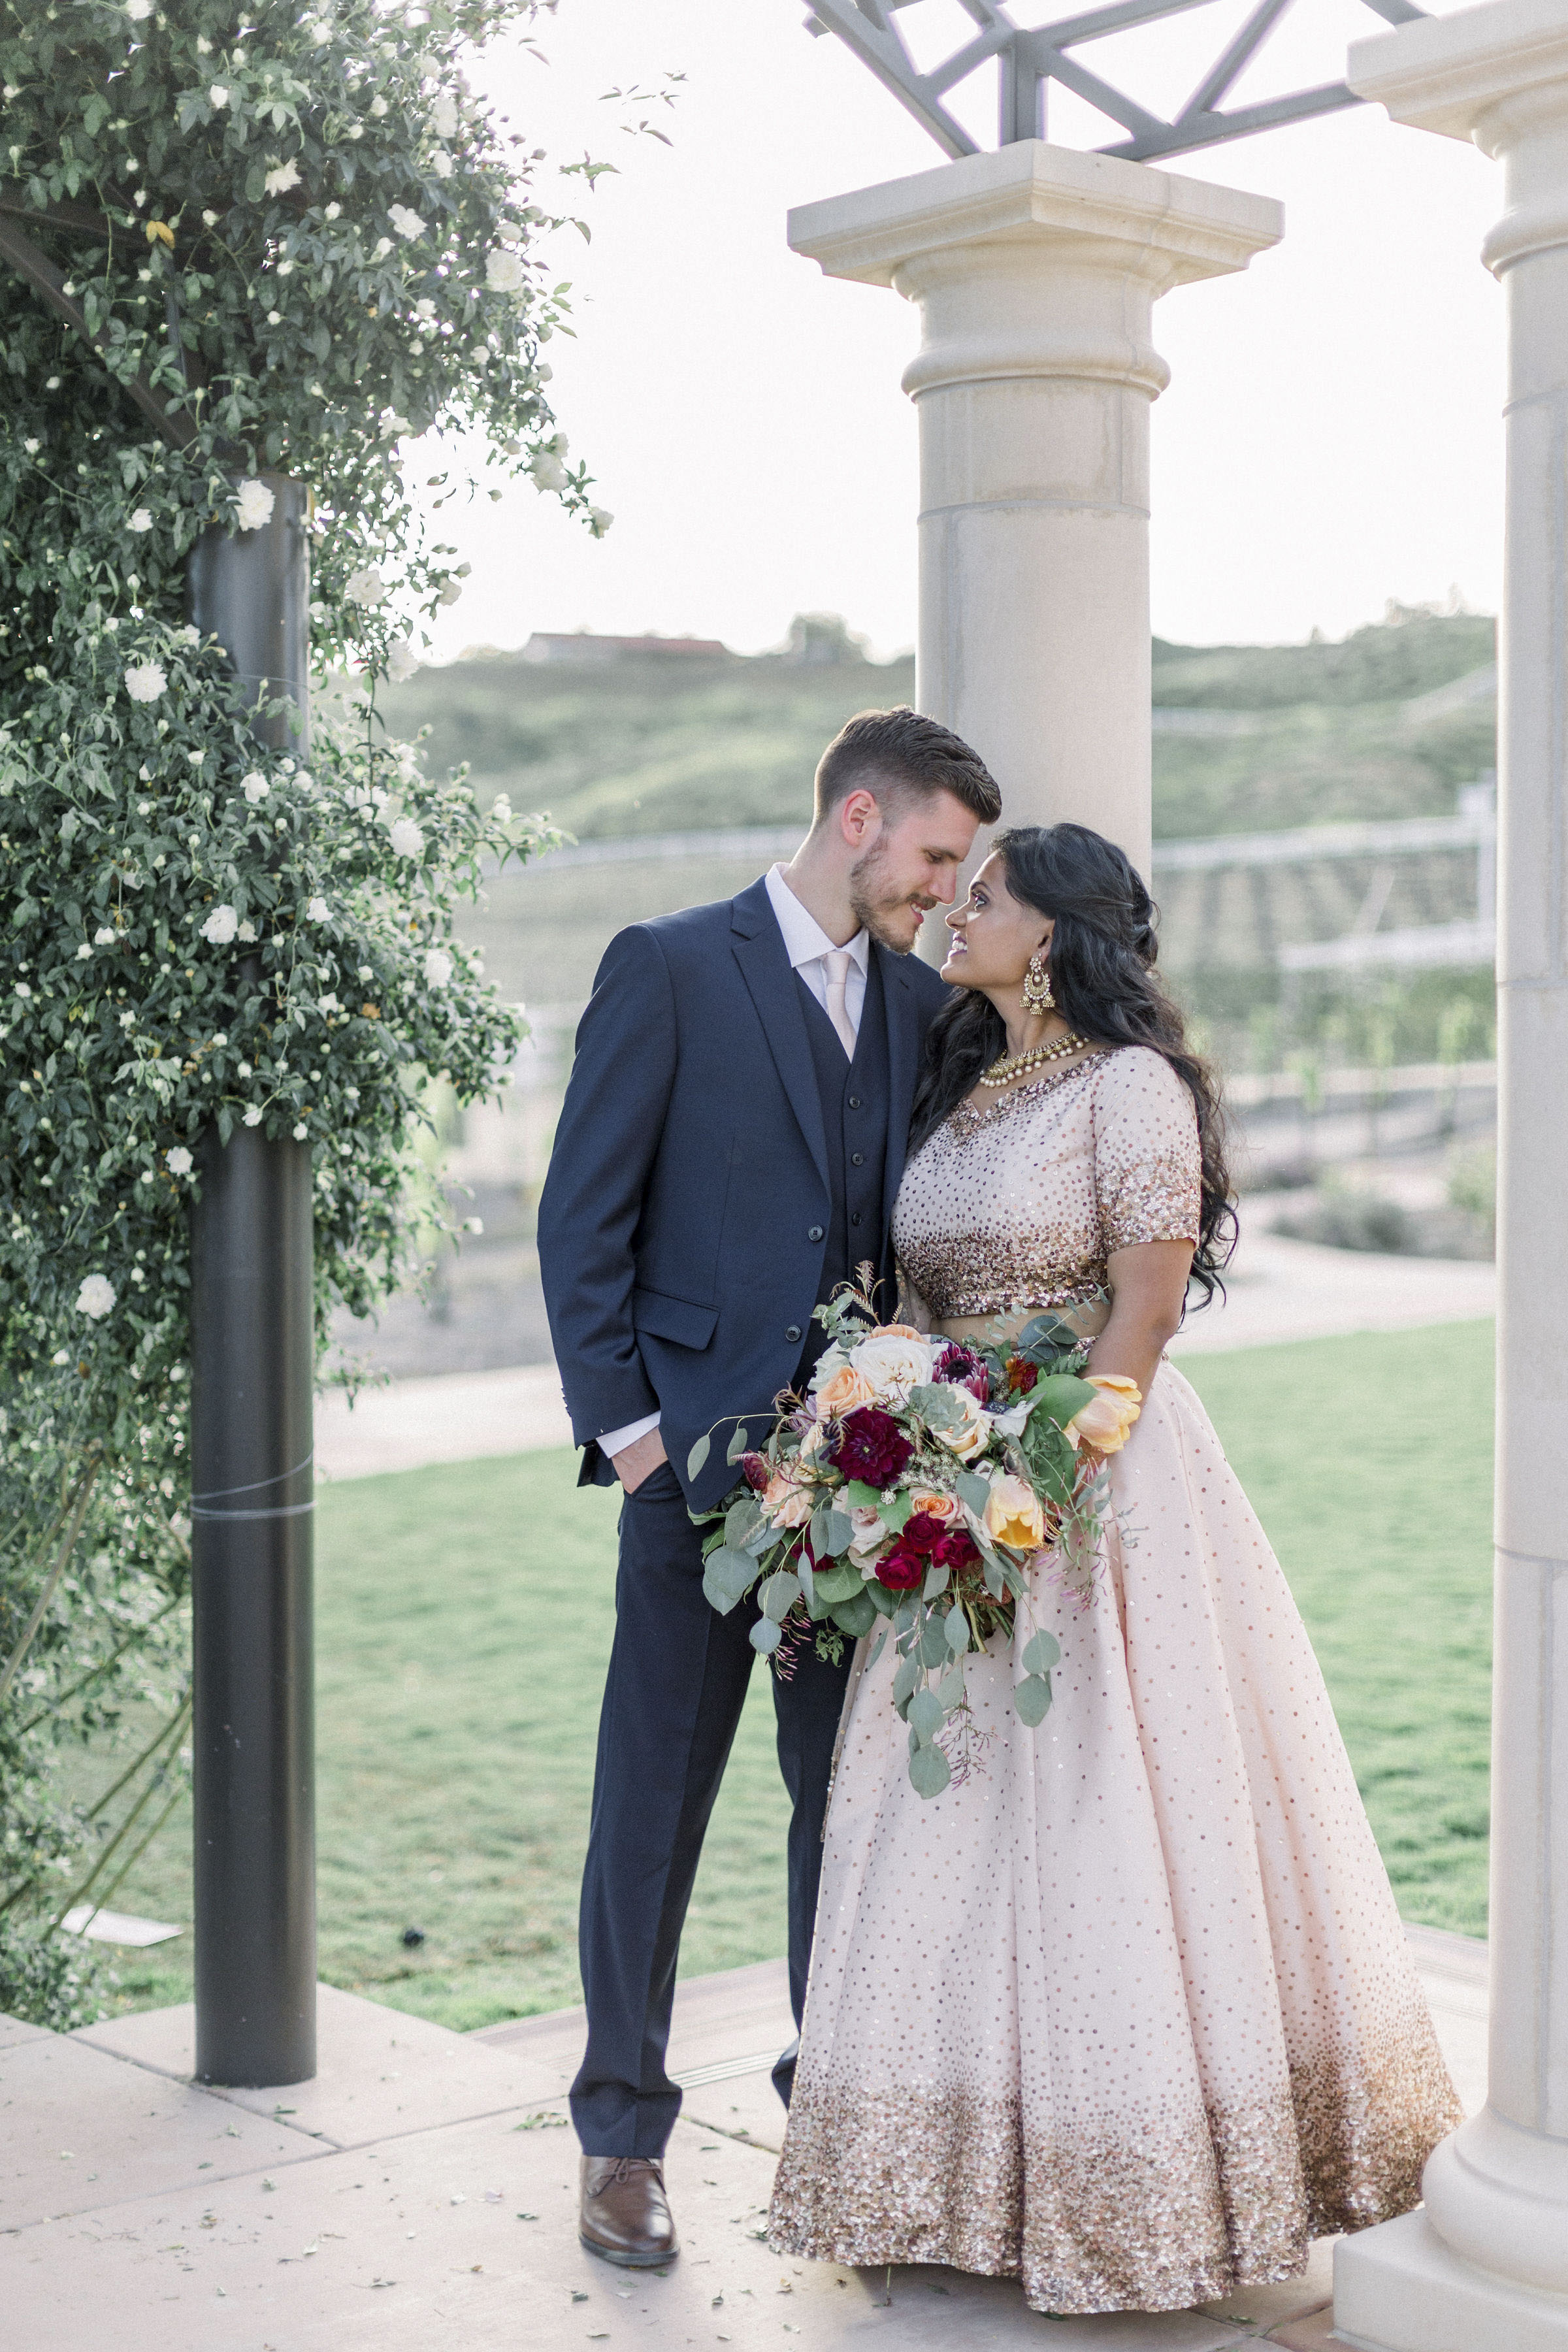 Domenica Beauty _ Hair and Makeup Artist _Wedding _ Temecula, CA _ Pratishtha and Christopher _ 19.JPG